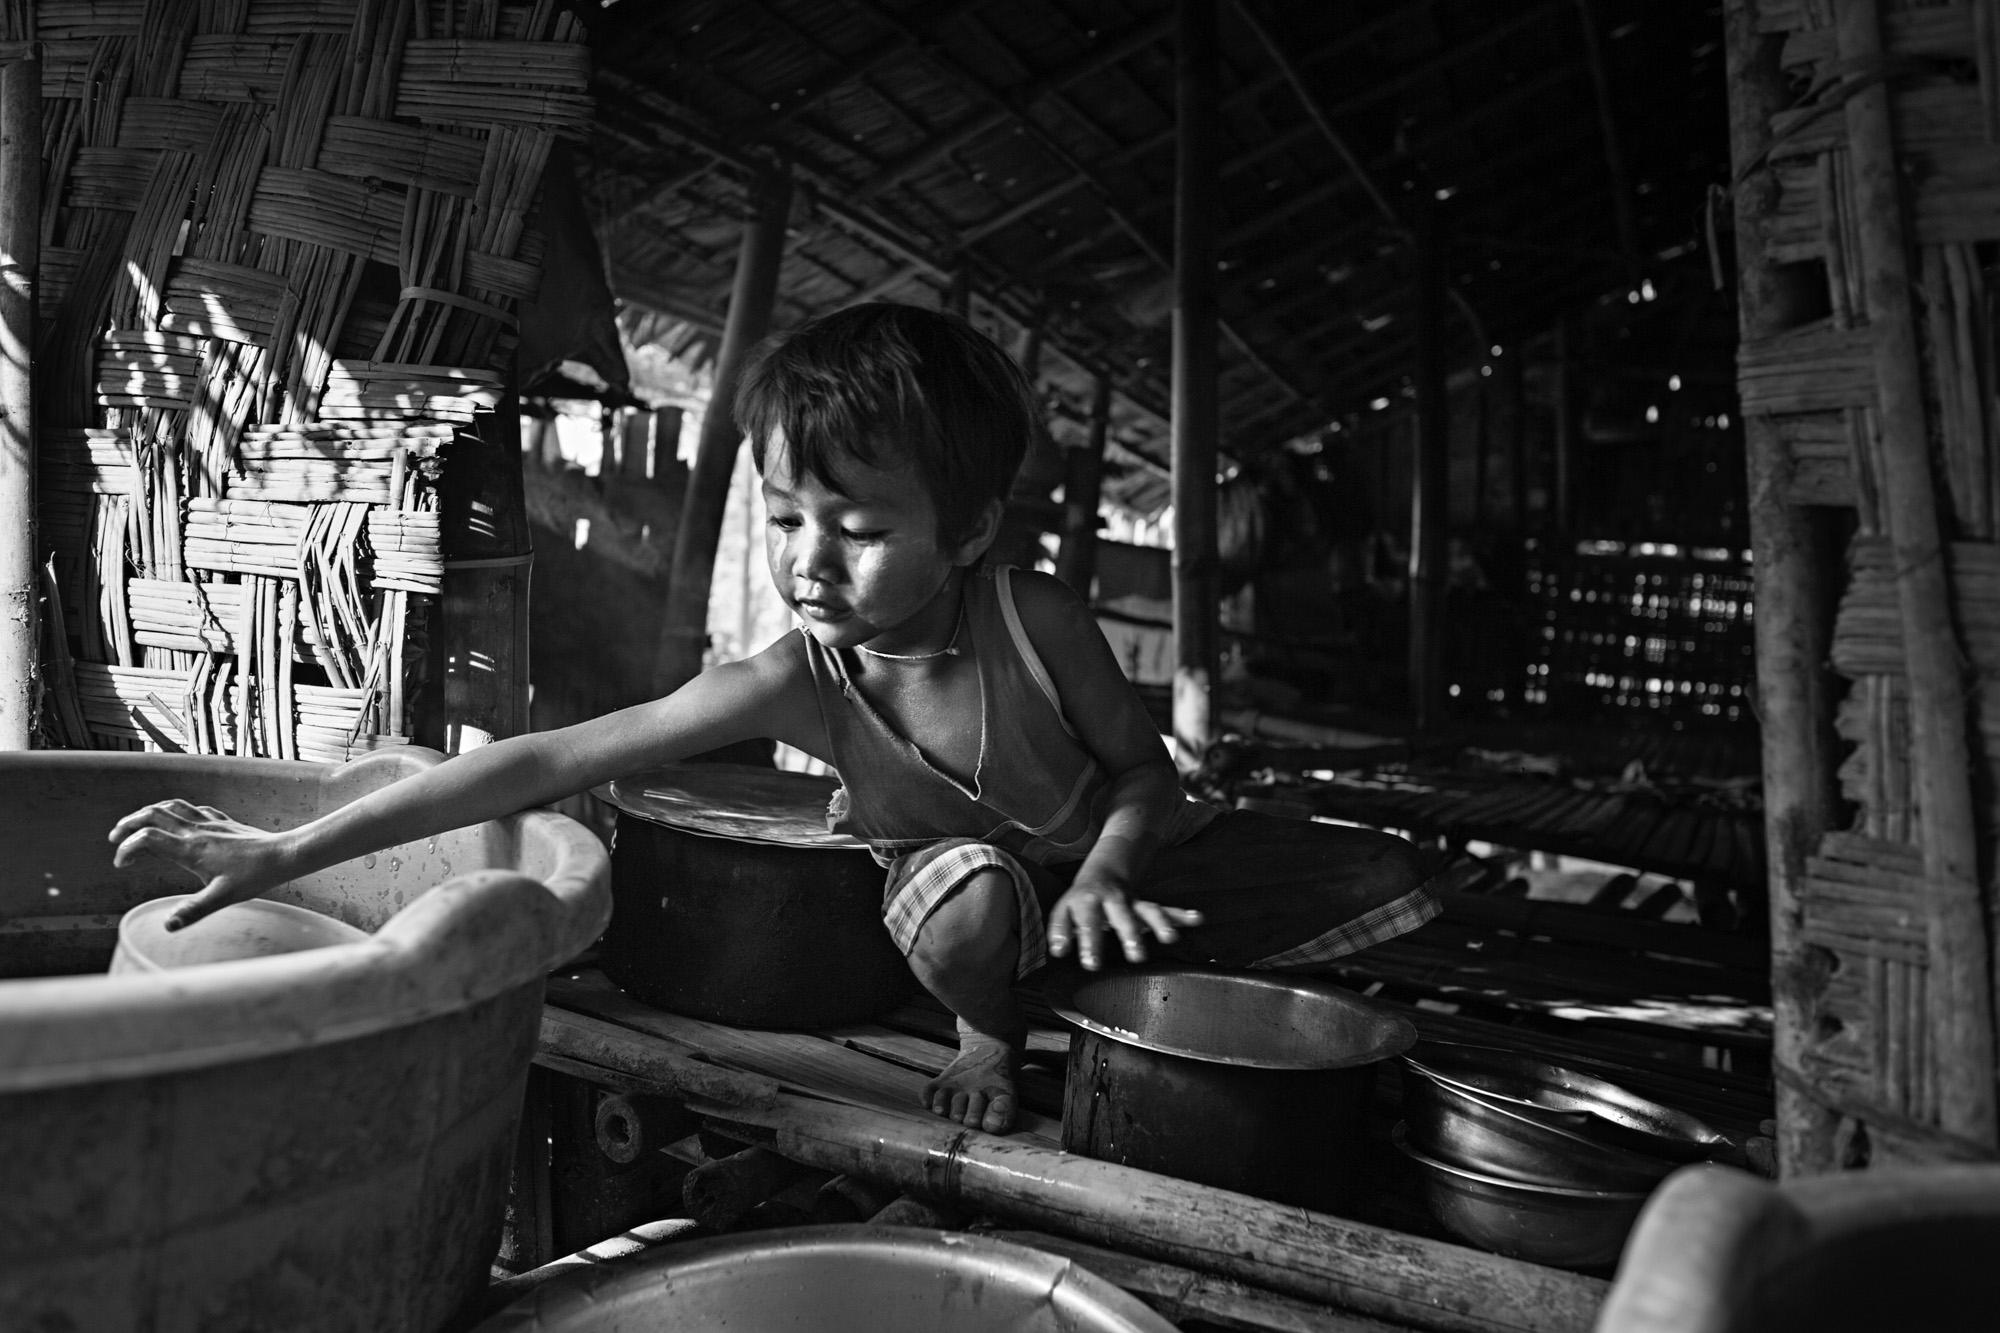 Saung Nin Wai cleans dishes after dinner.